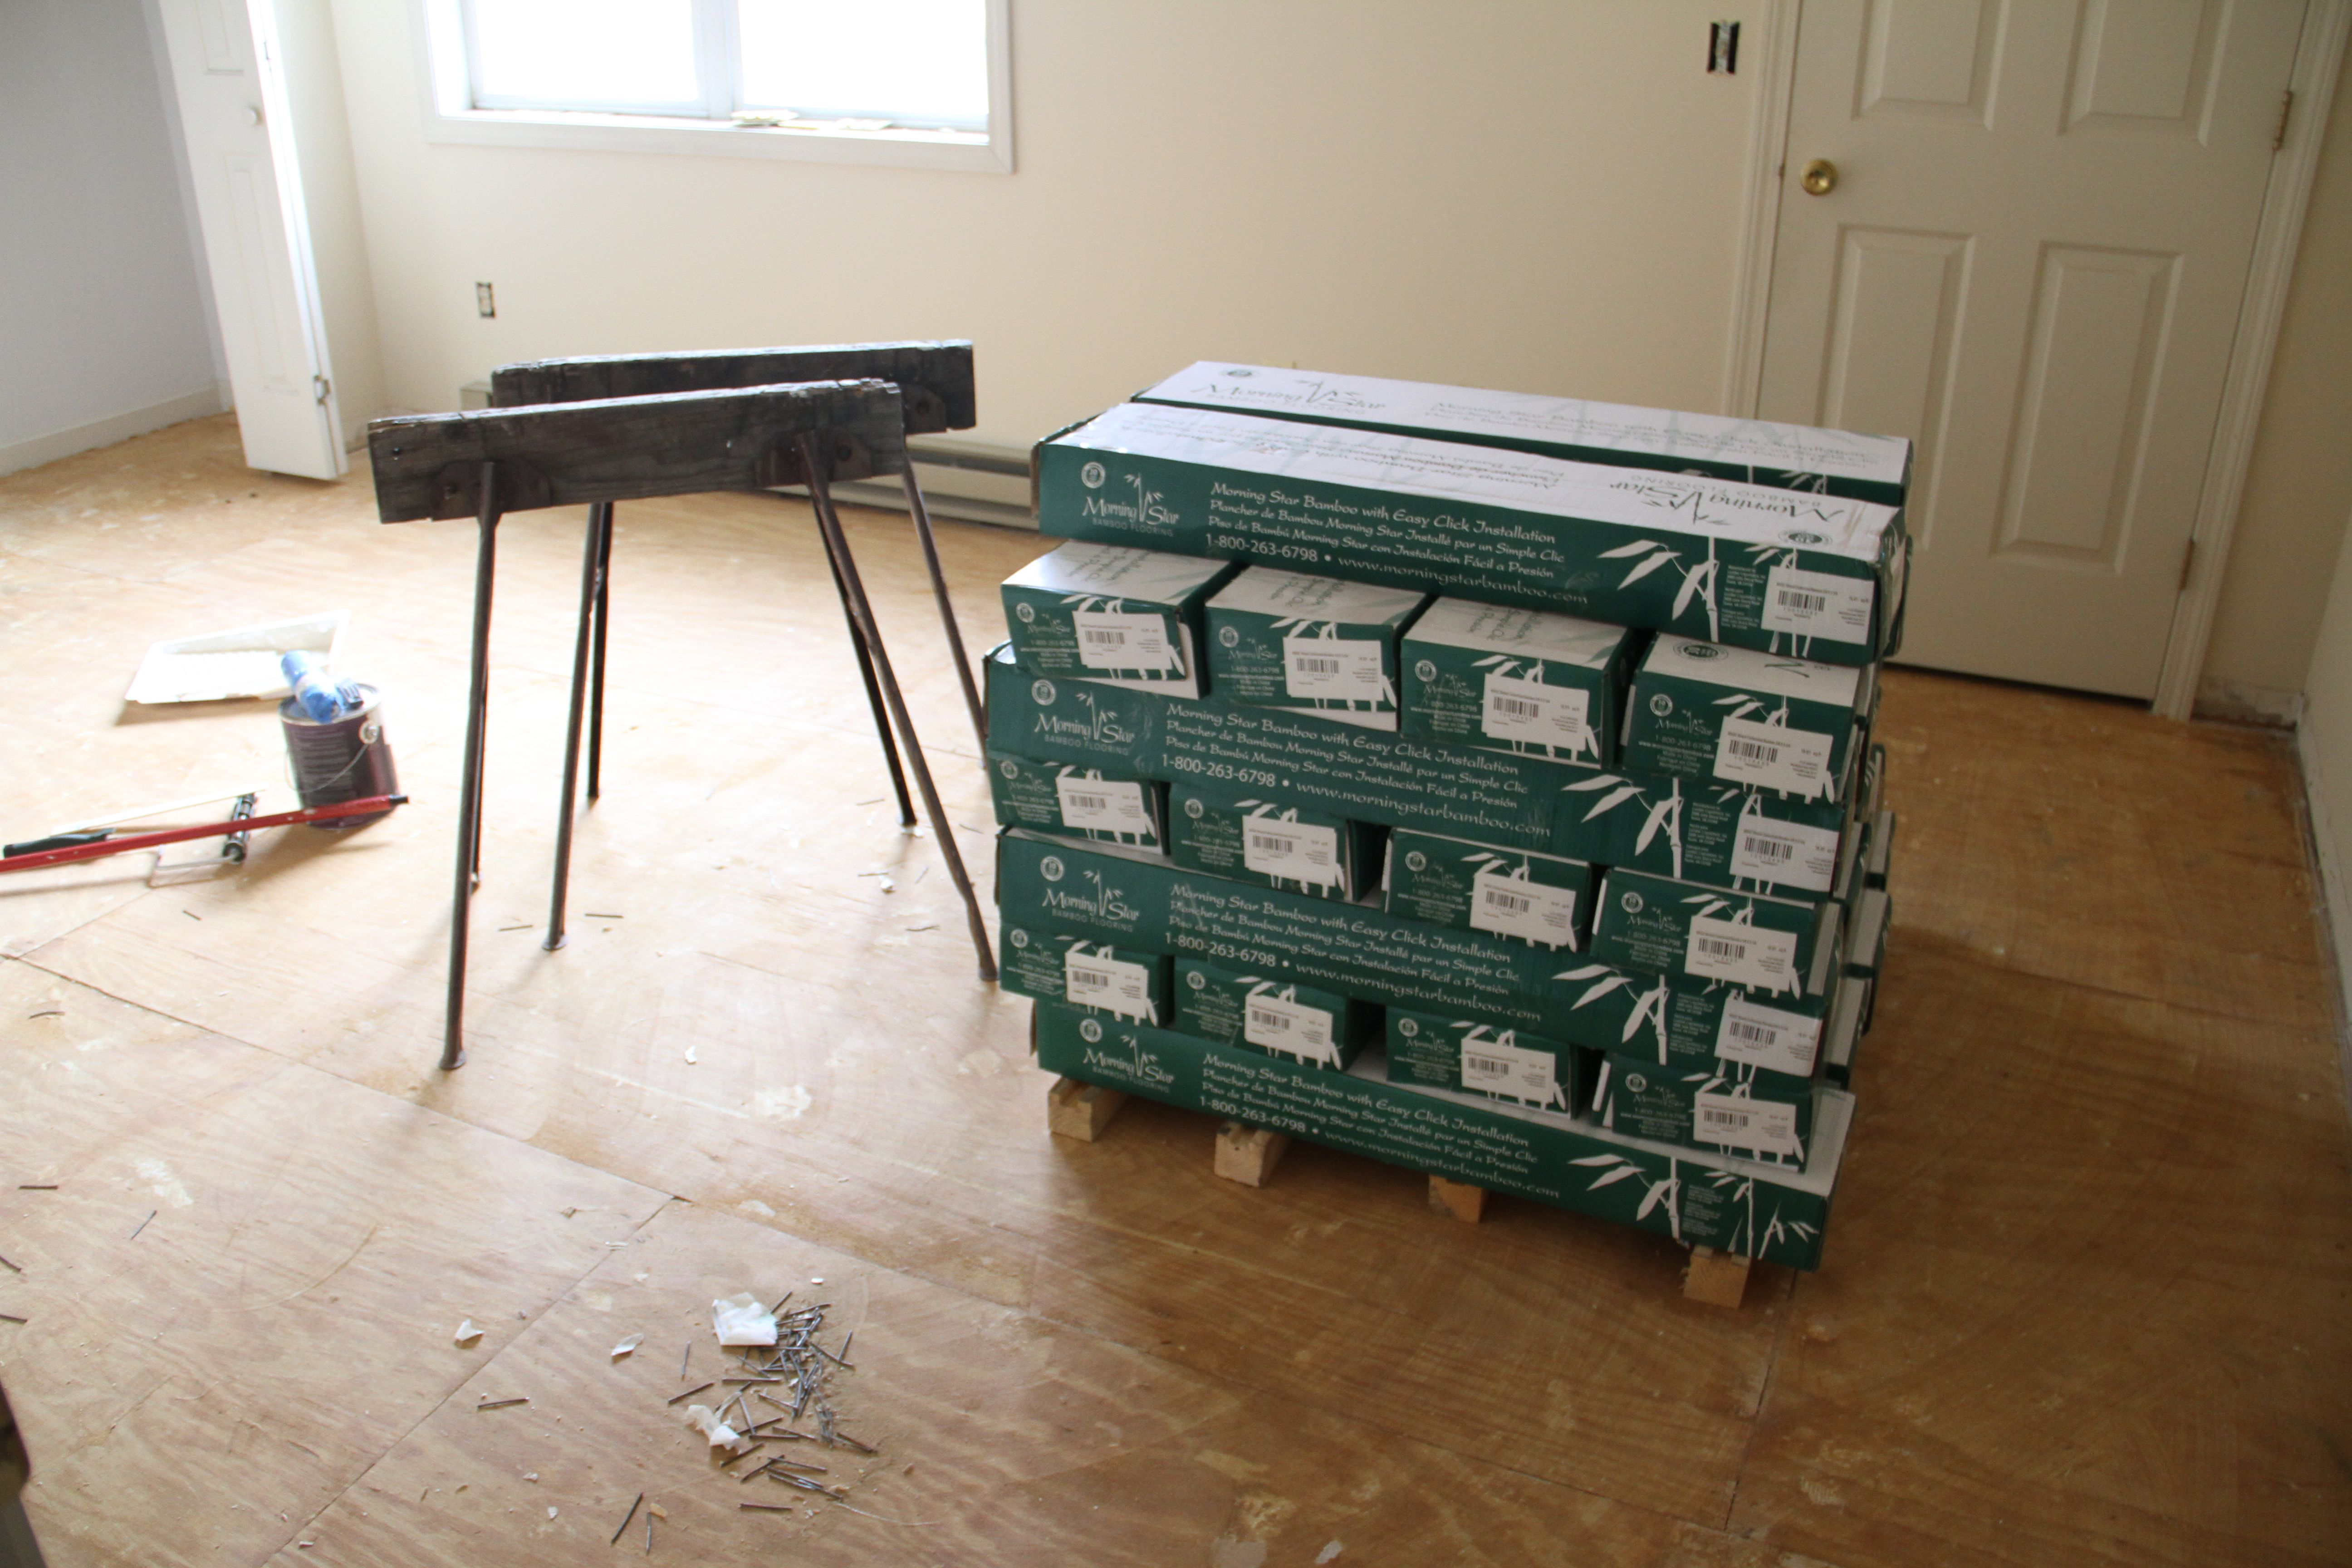 Half of the flooring had to be placed upstairs to get acclimated. Thanks to Jeff and Paul for hauling it up there.